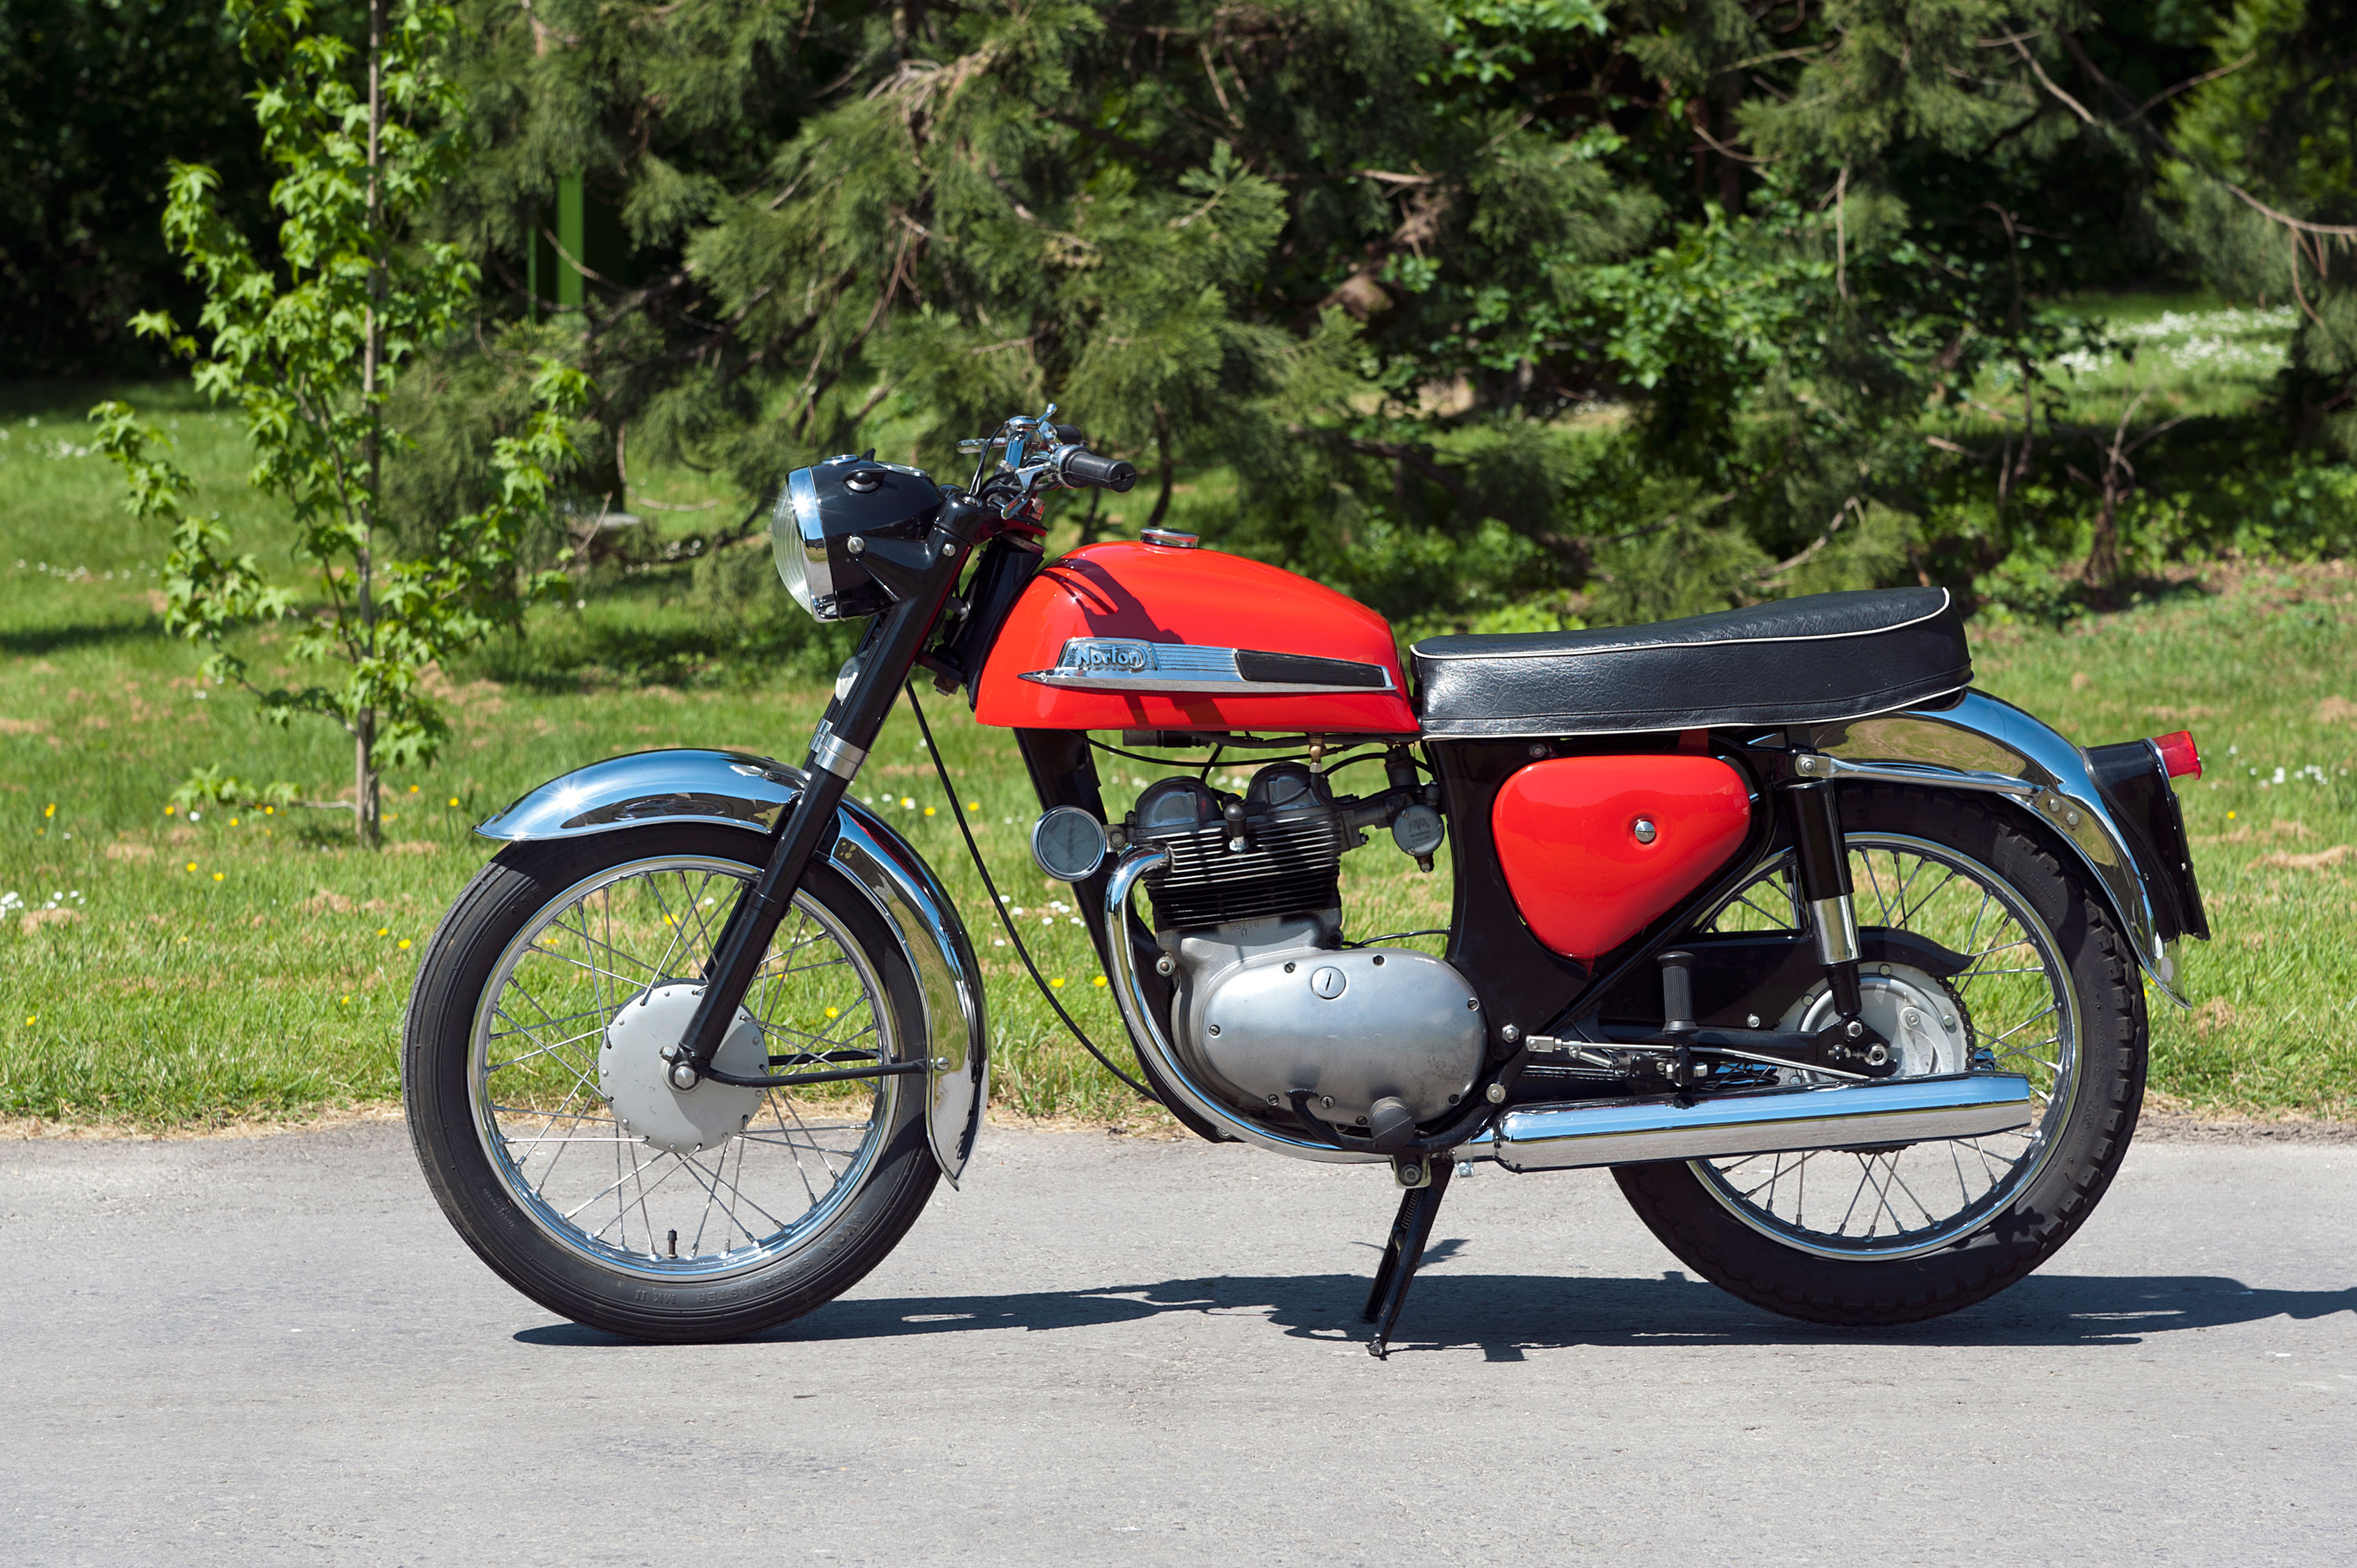 A 1961 Norton Jubilee 250cc motorcycle